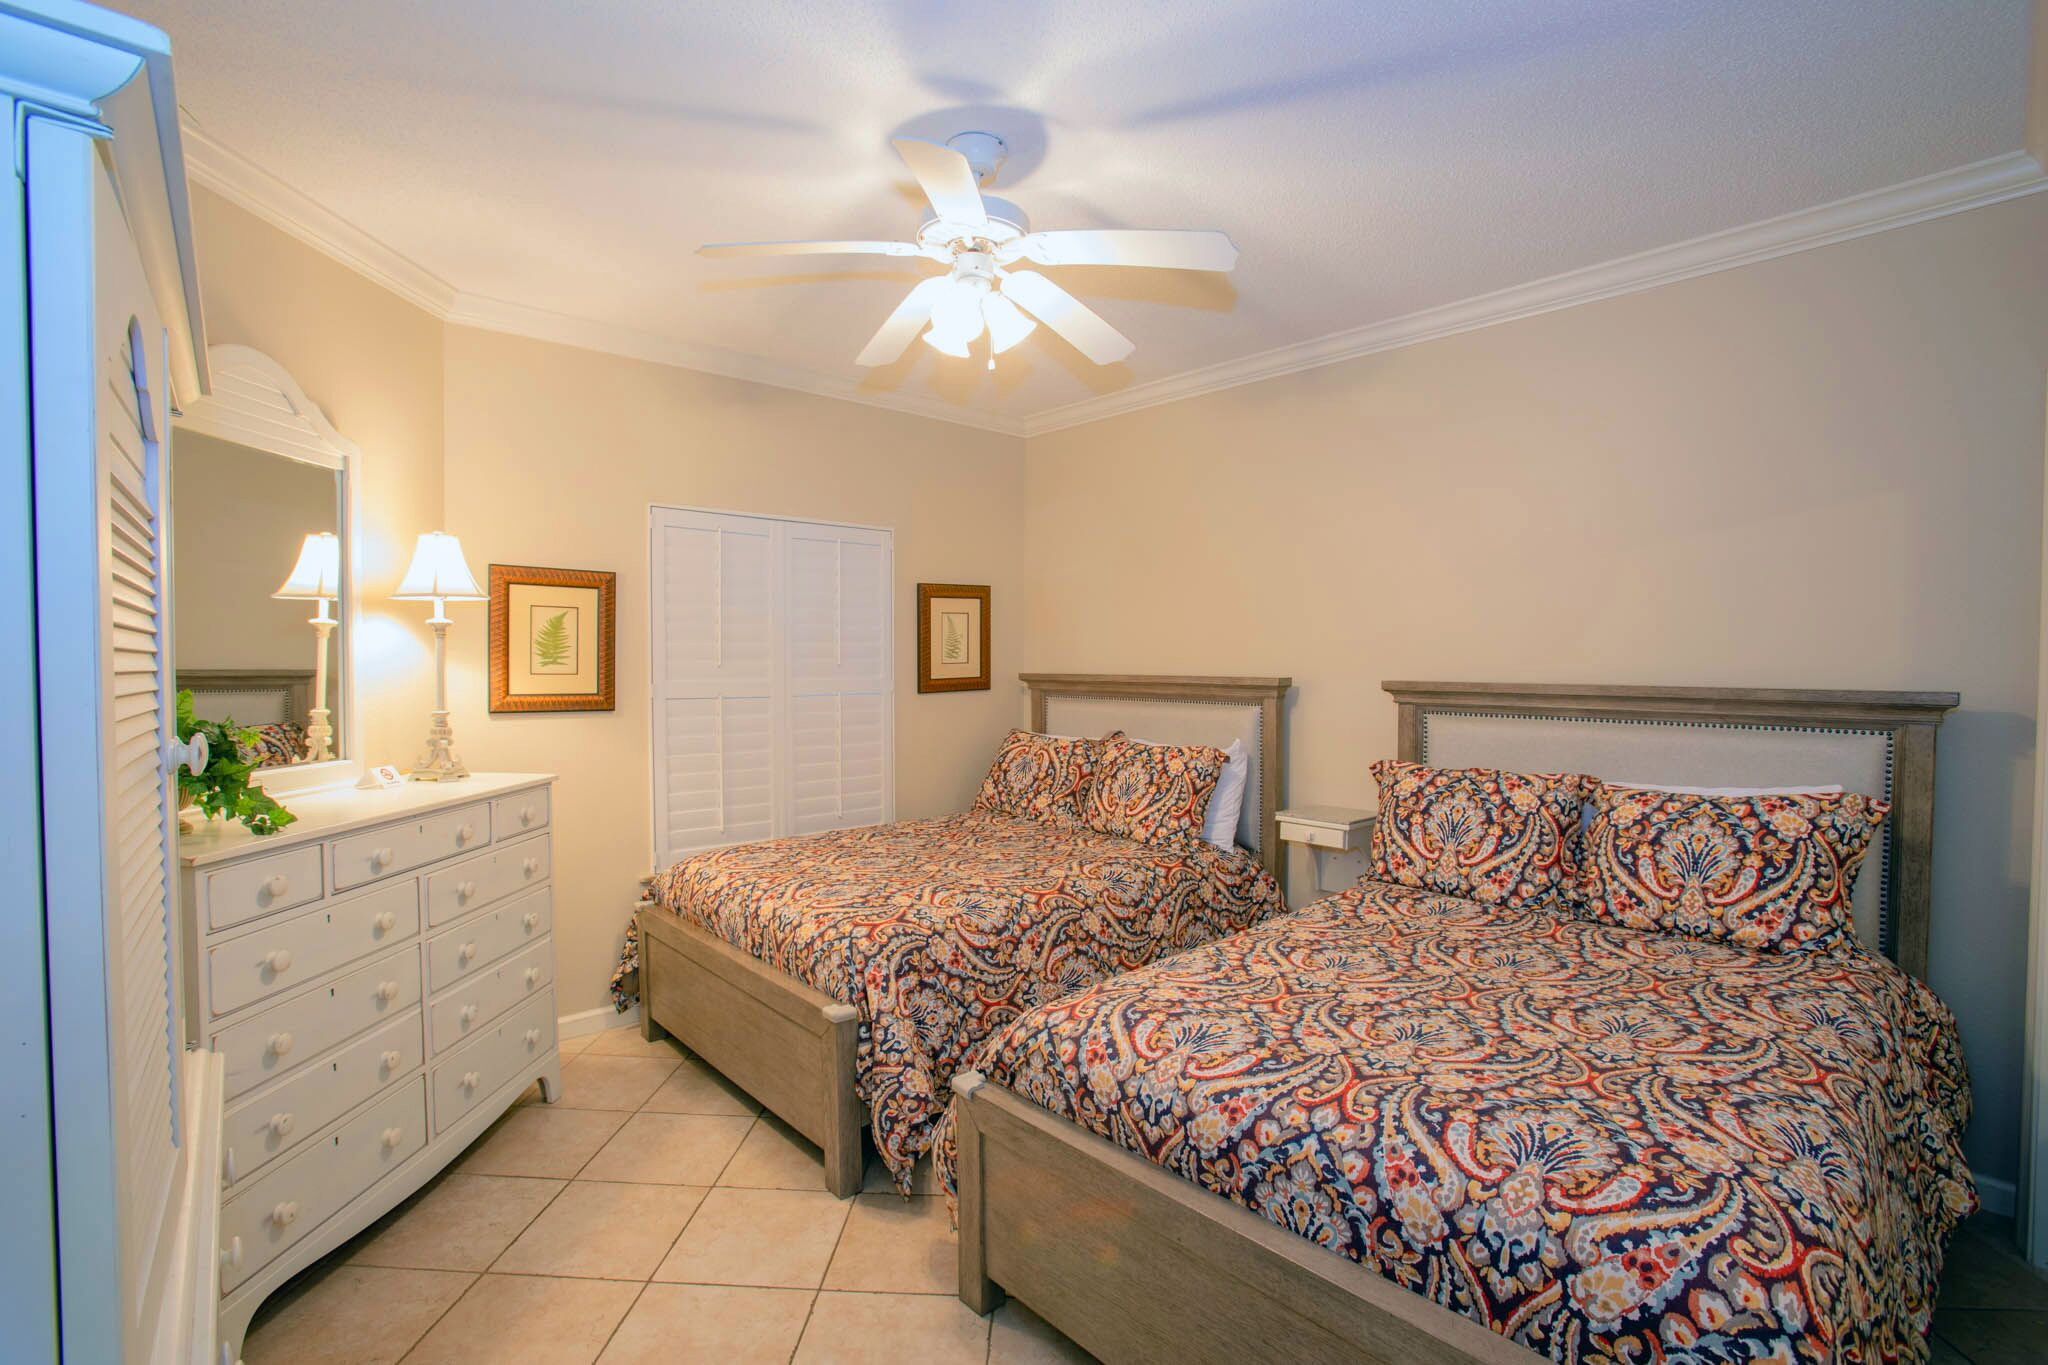 The Pearl of Navarre #504 Condo rental in The Pearl of Navarre Beach in Navarre Florida - #17